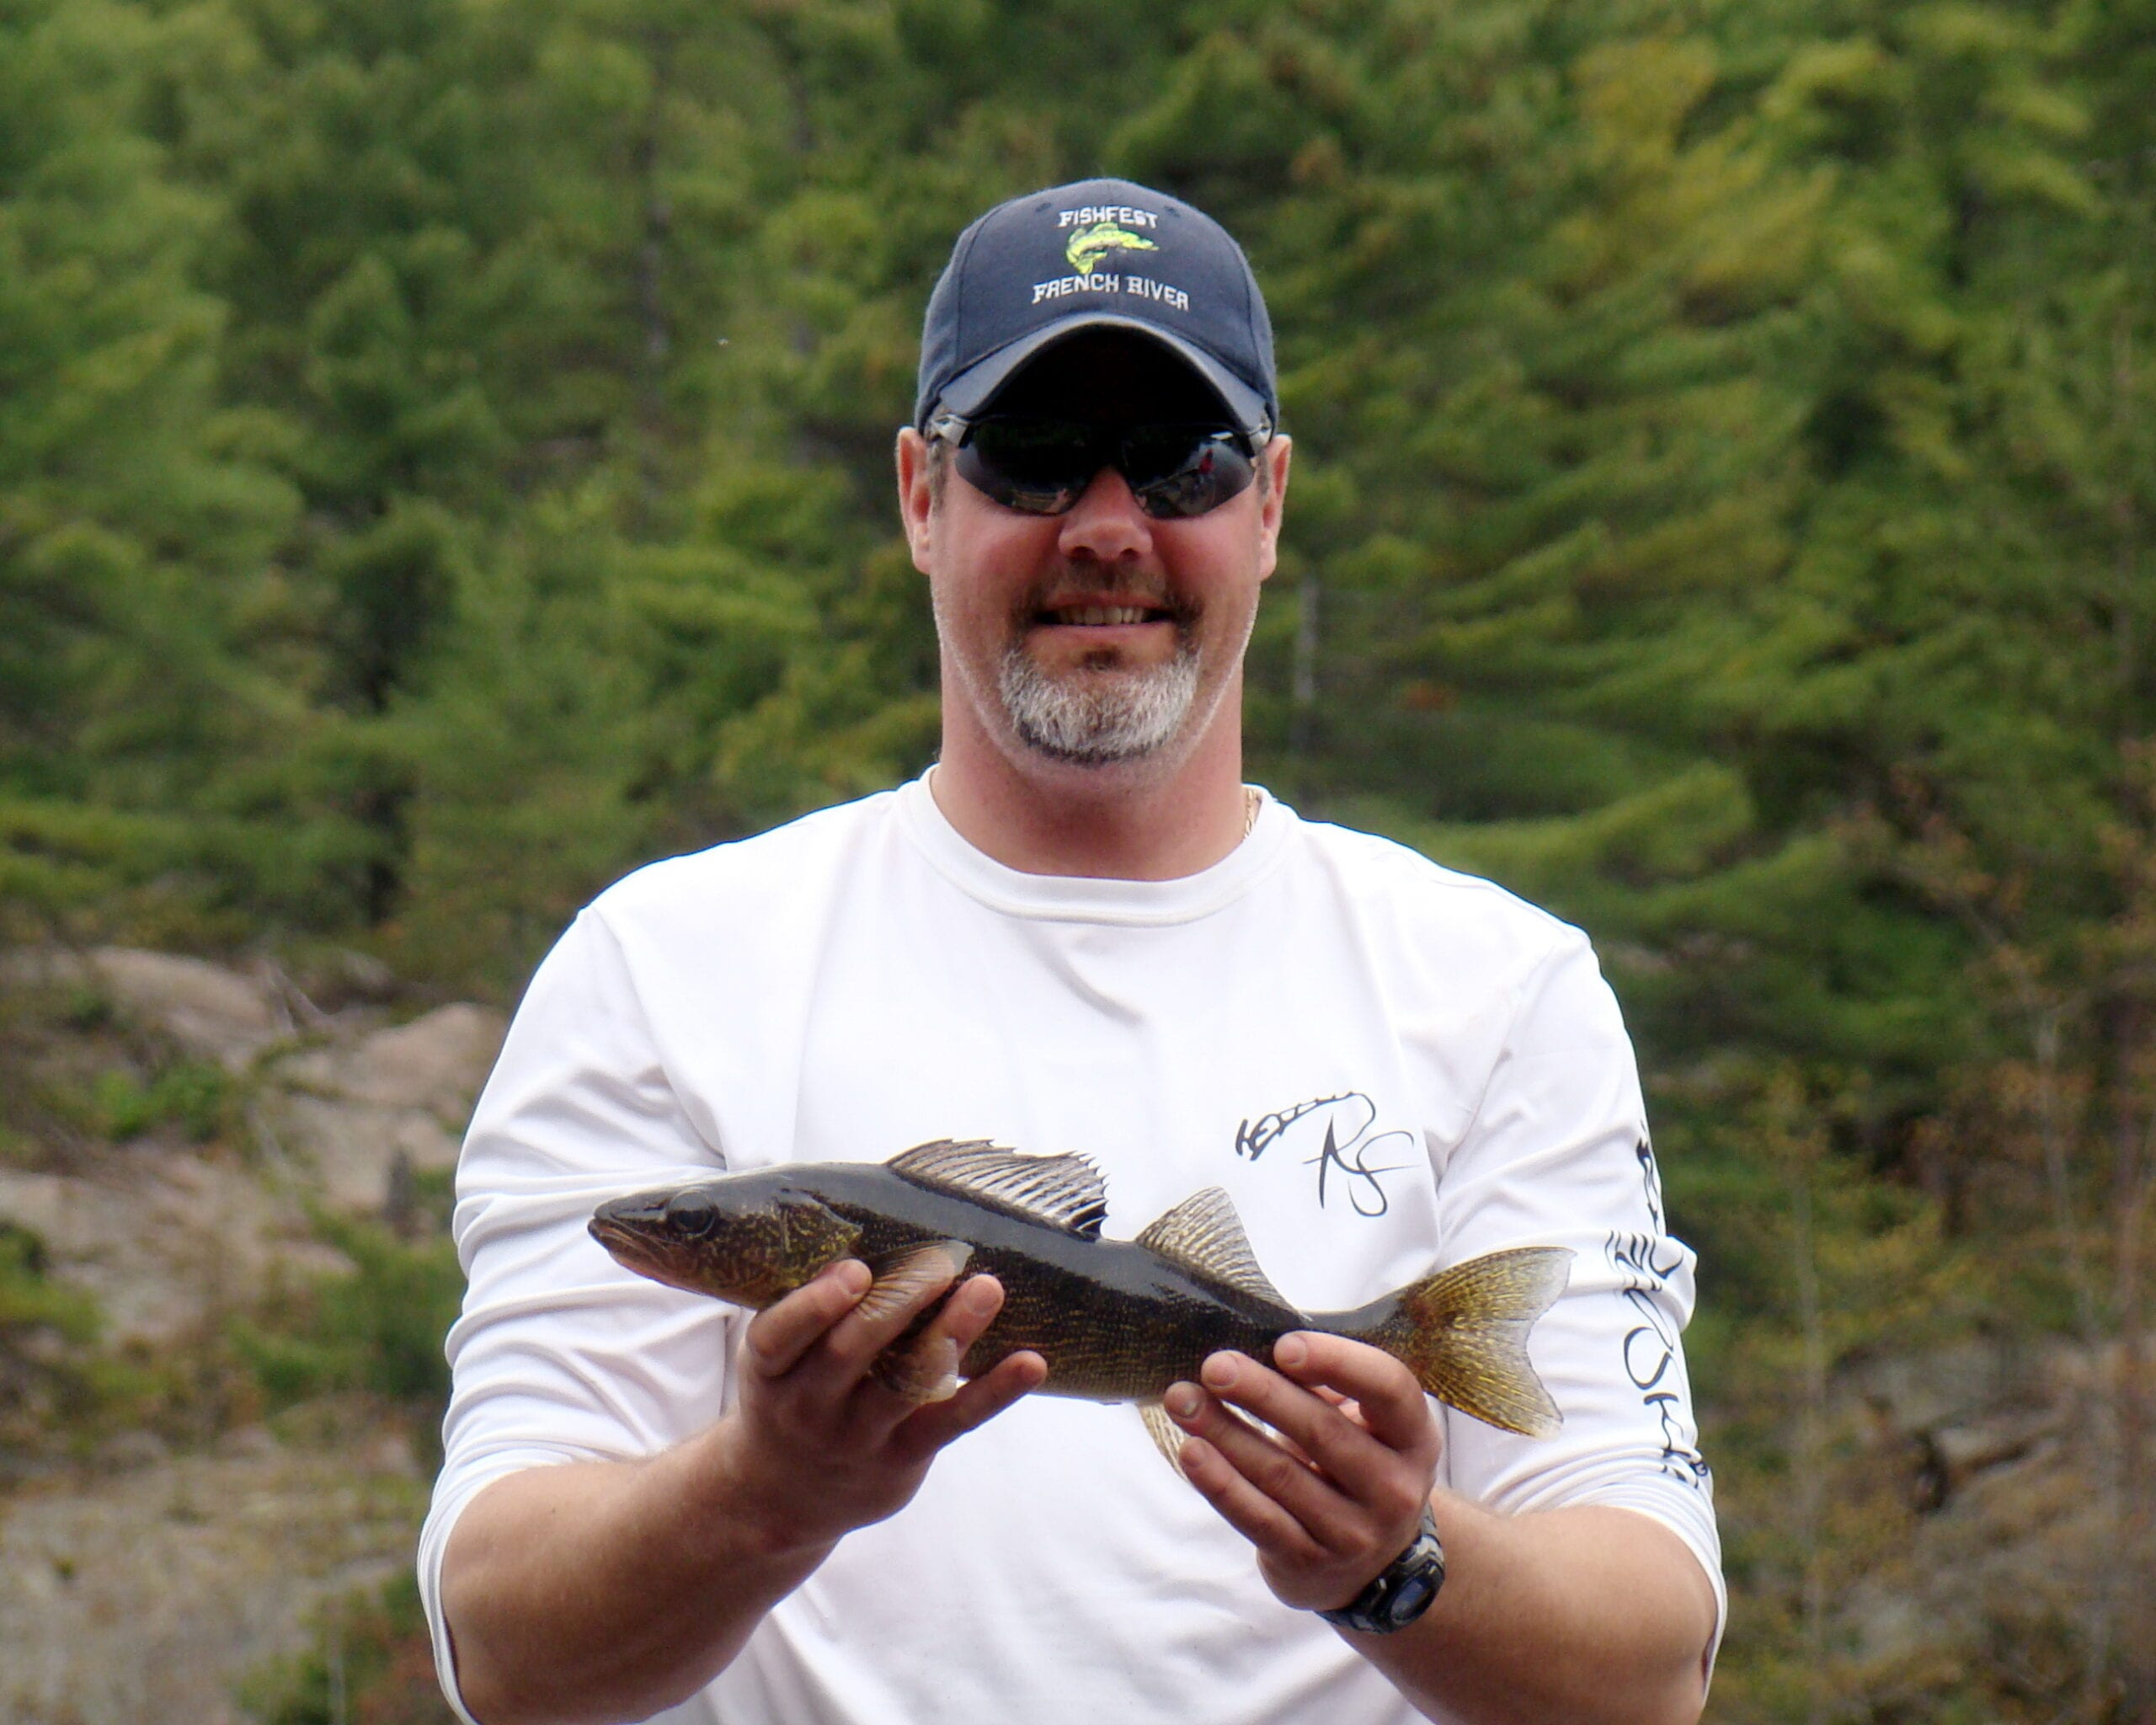 yearling French River walleye